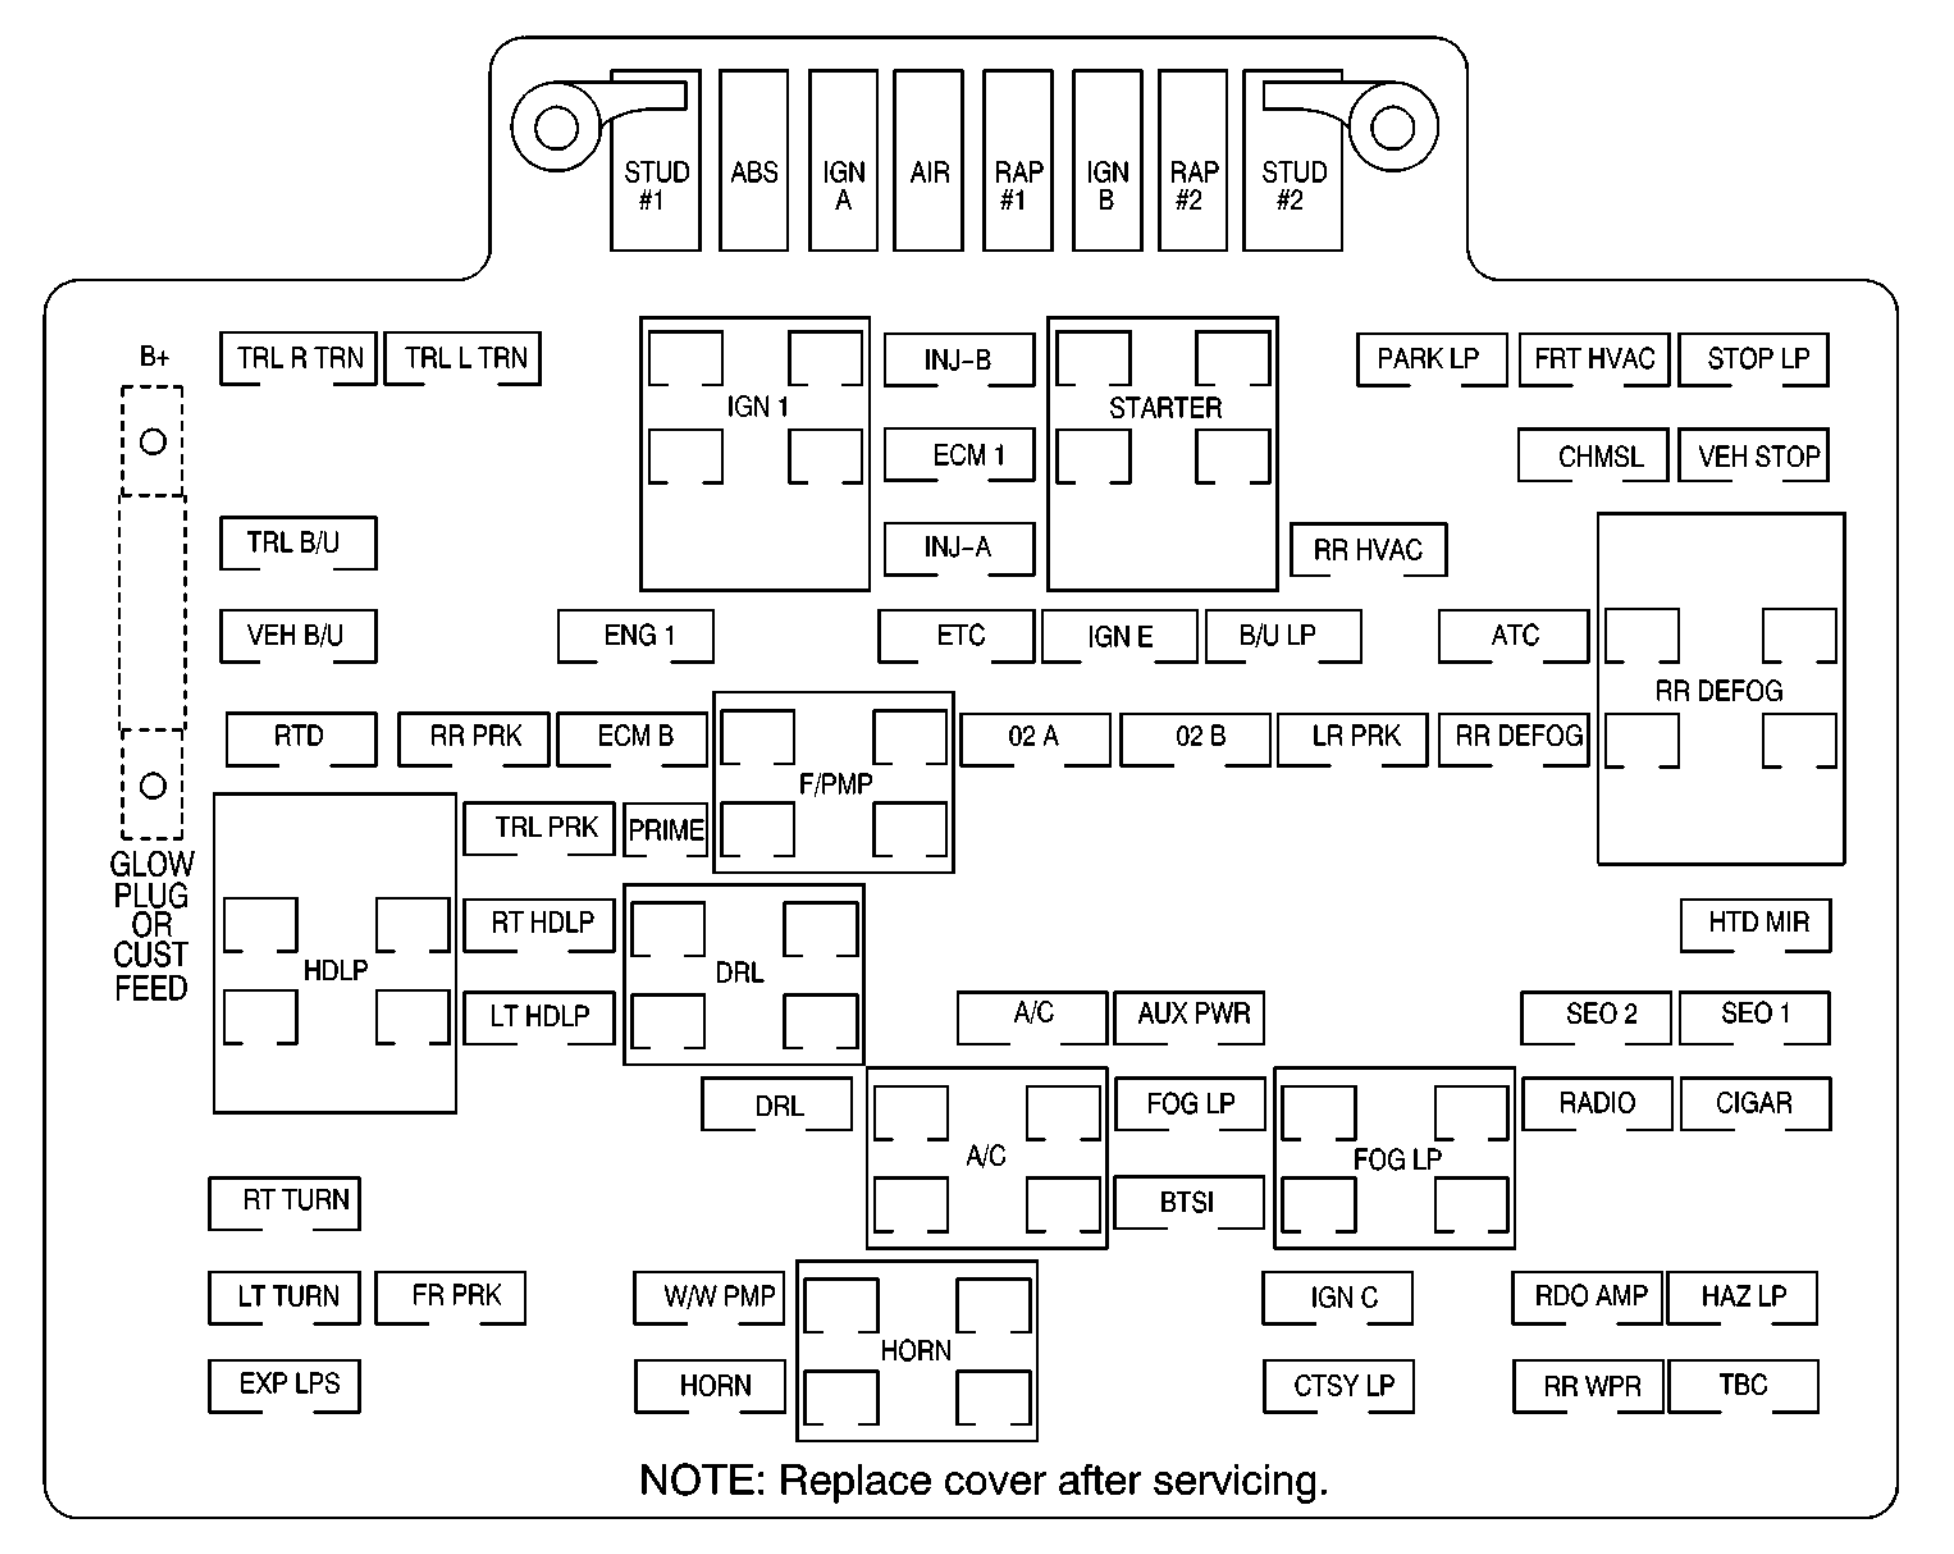 2005 chevy suburban fuse box diagram 2000 suburban fuse diagram - wiring data 1999 chevy suburban fuse box diagram